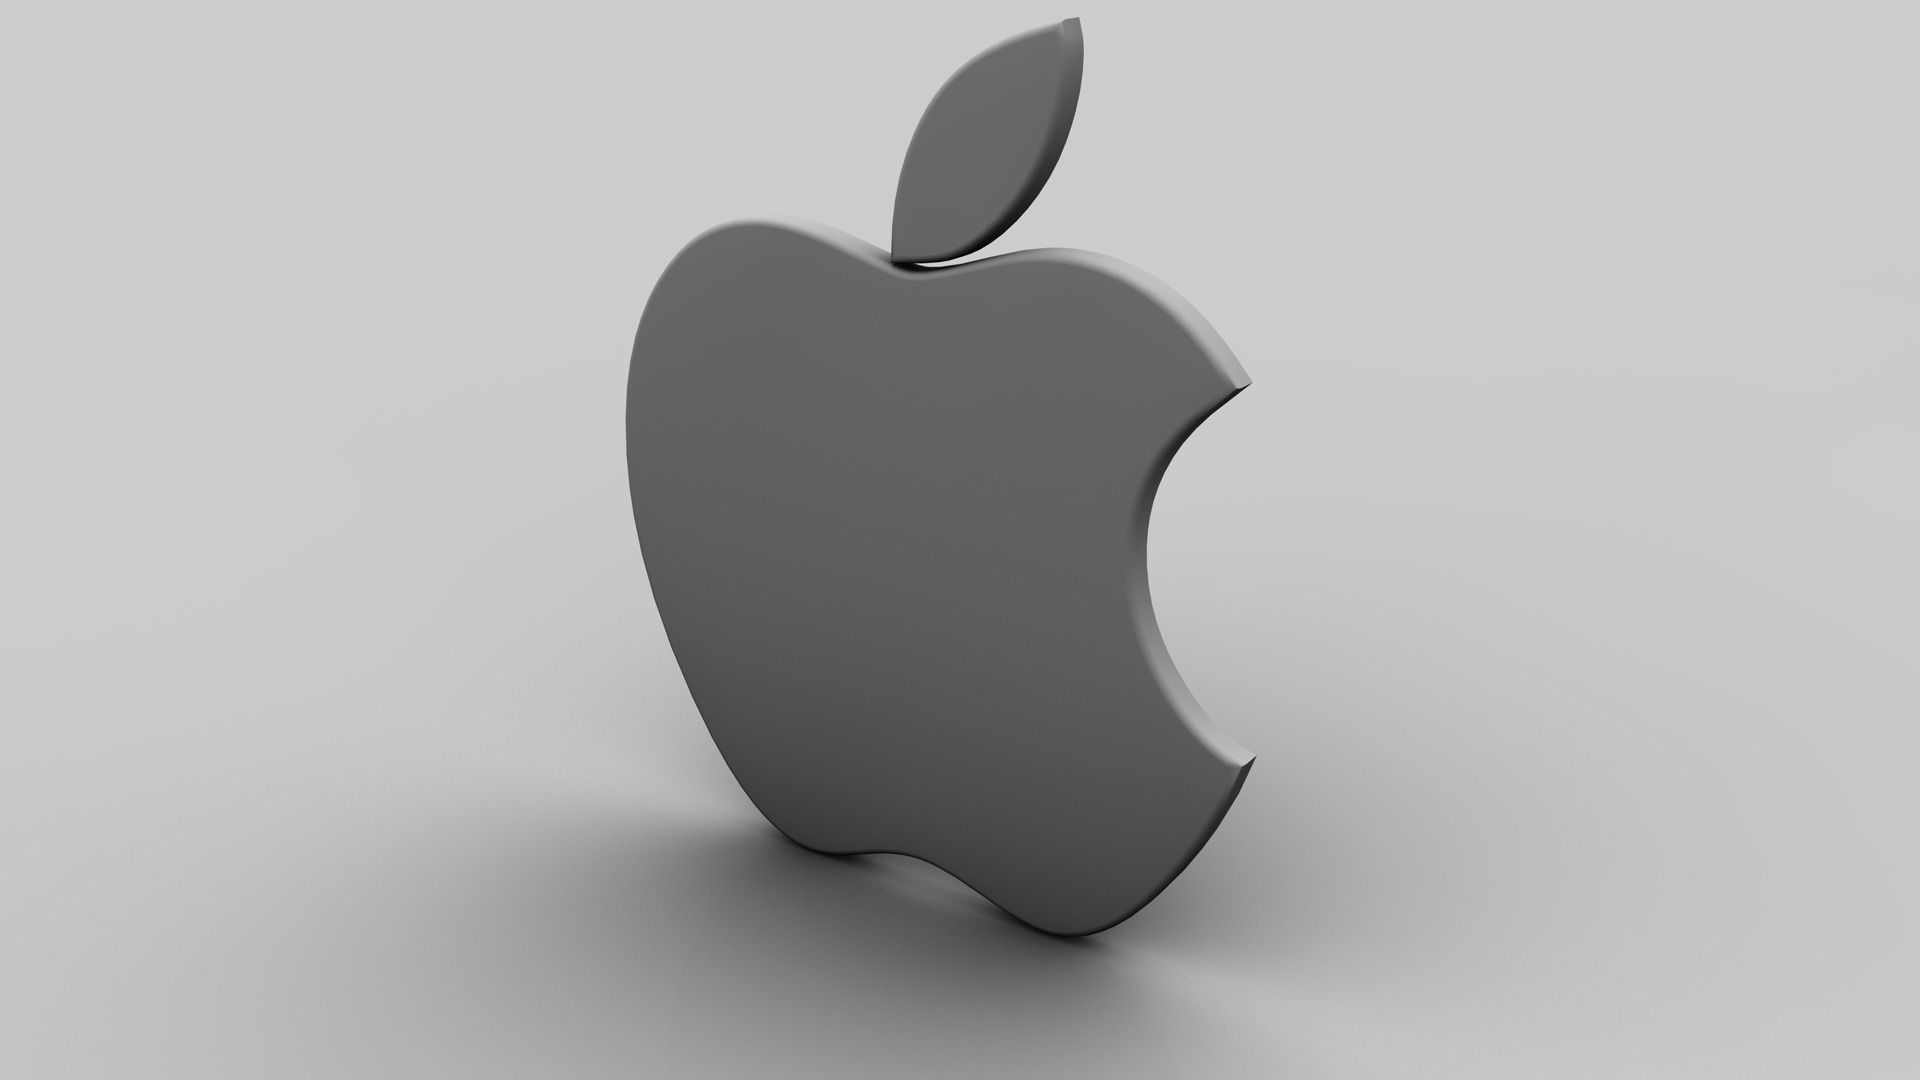 apple 3d logo wallpapers background hd wallpaper | apple logo